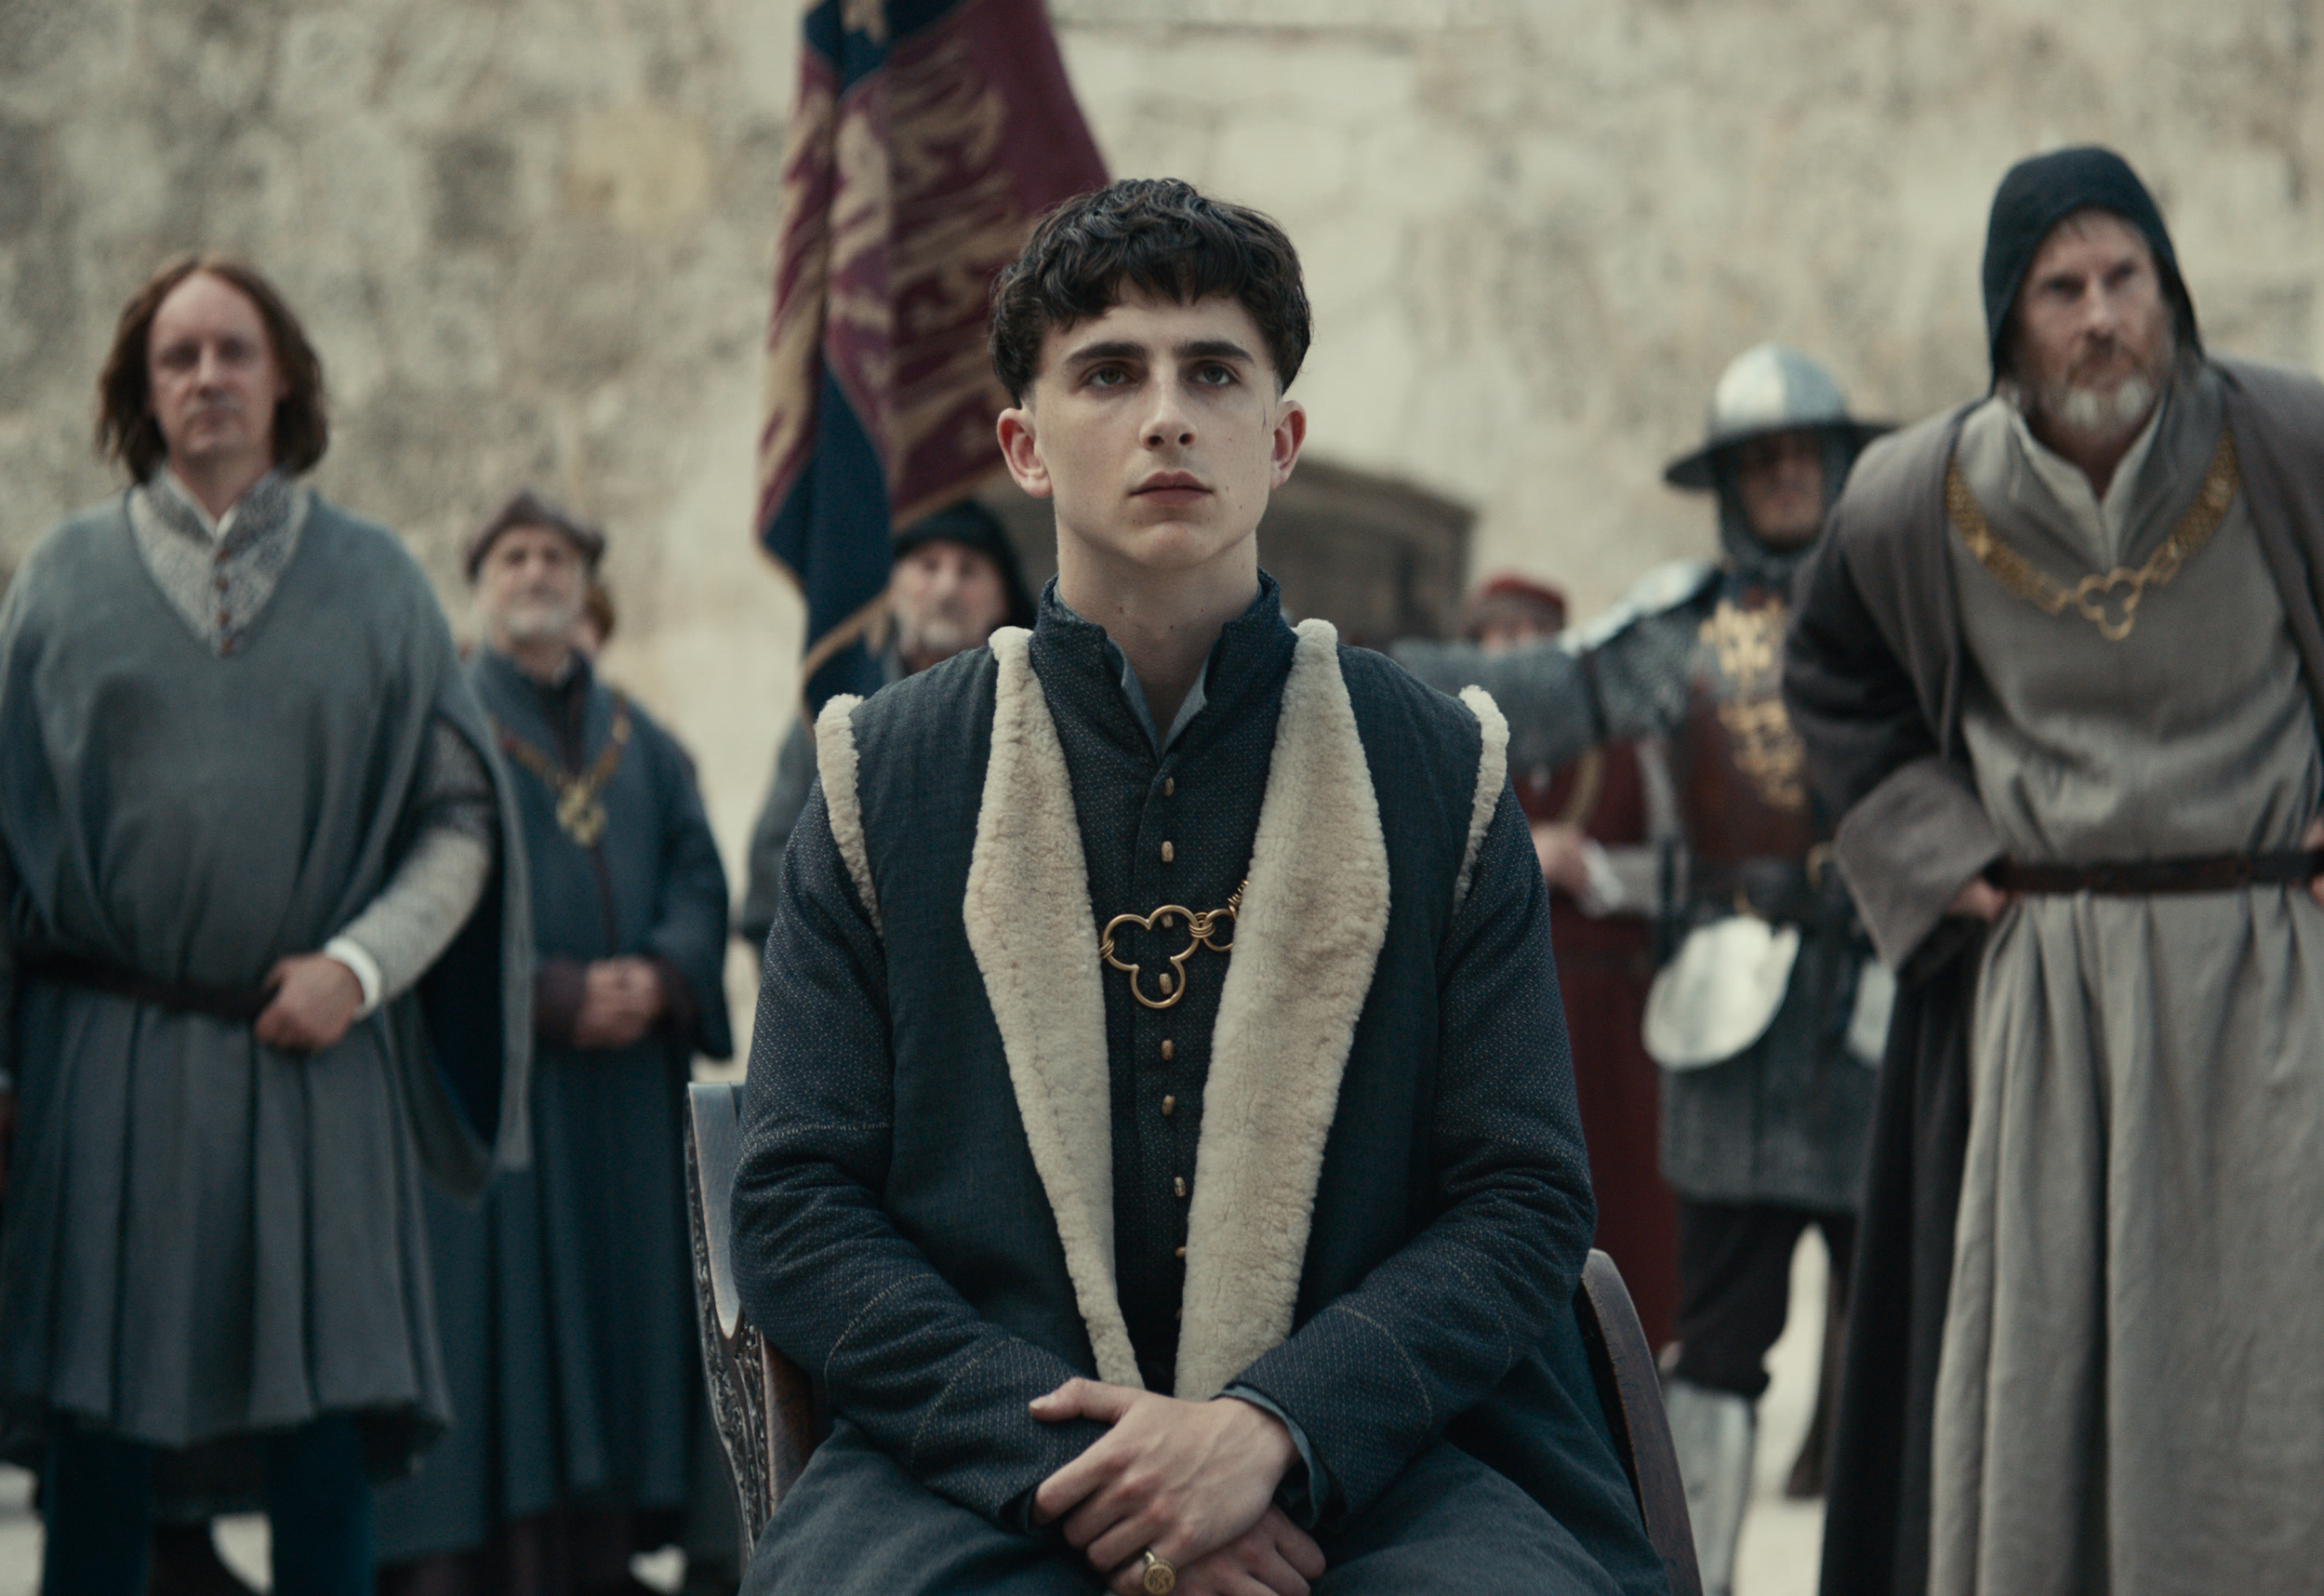 Actor Timothée Chalamet is seen sporting a bowl cut for his role as Henry V in Netflix drama The King